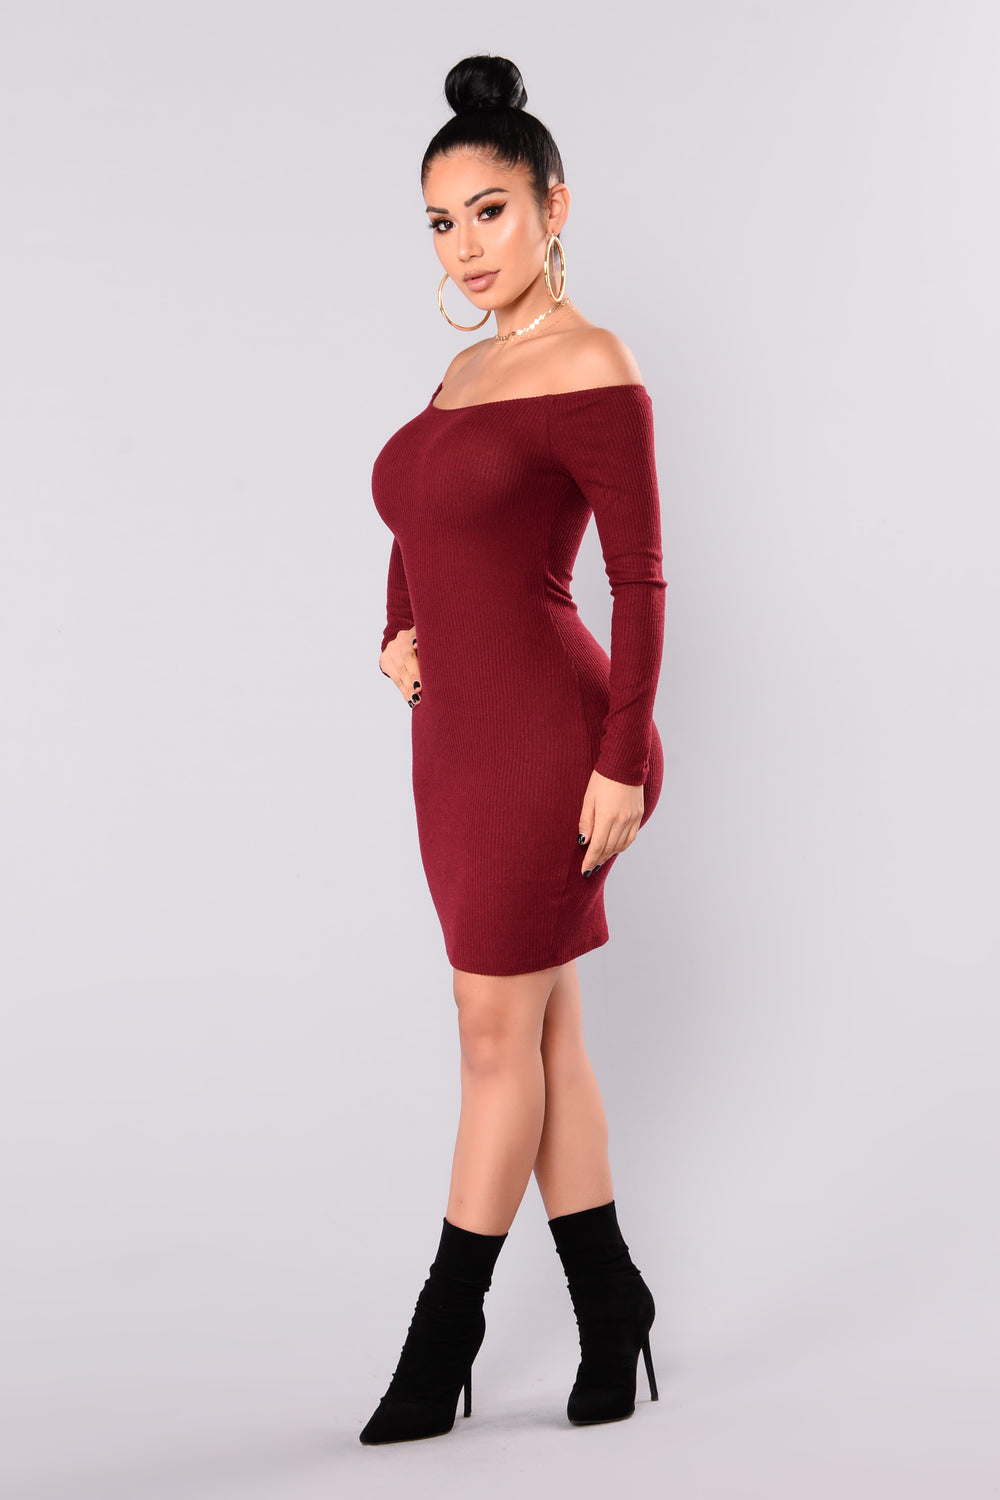 Kaly Sweater Dress - Wine